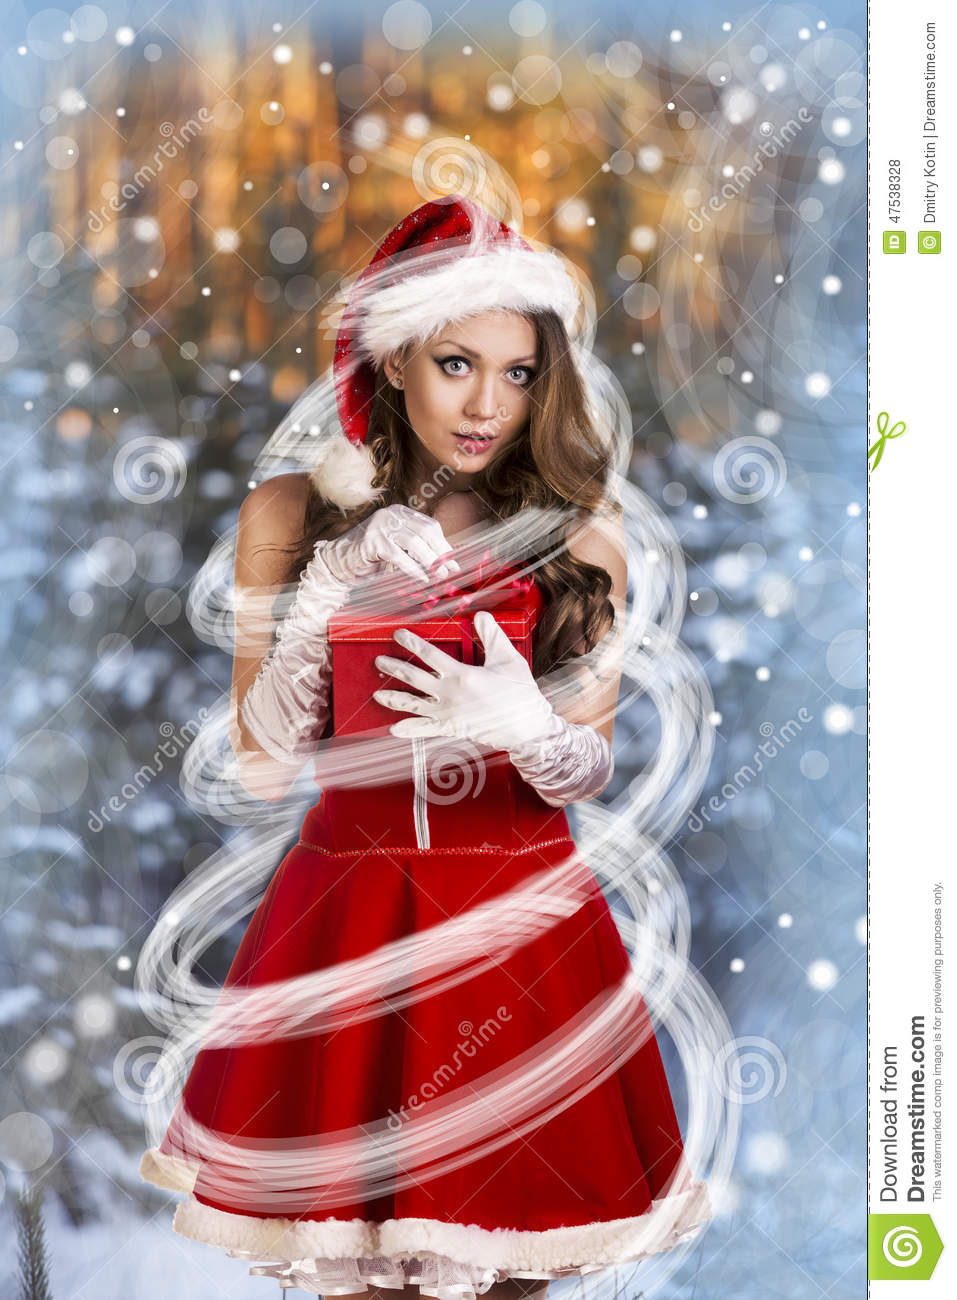 Sexy and beautiful Santa girl in red Santa's dress and hat over winter ...: https://www.dreamstime.com/stock-photo-sexy-beautiful-santa-girl-red-s-dress-hat-over-winter-forest-background-christmas-card-image47538328